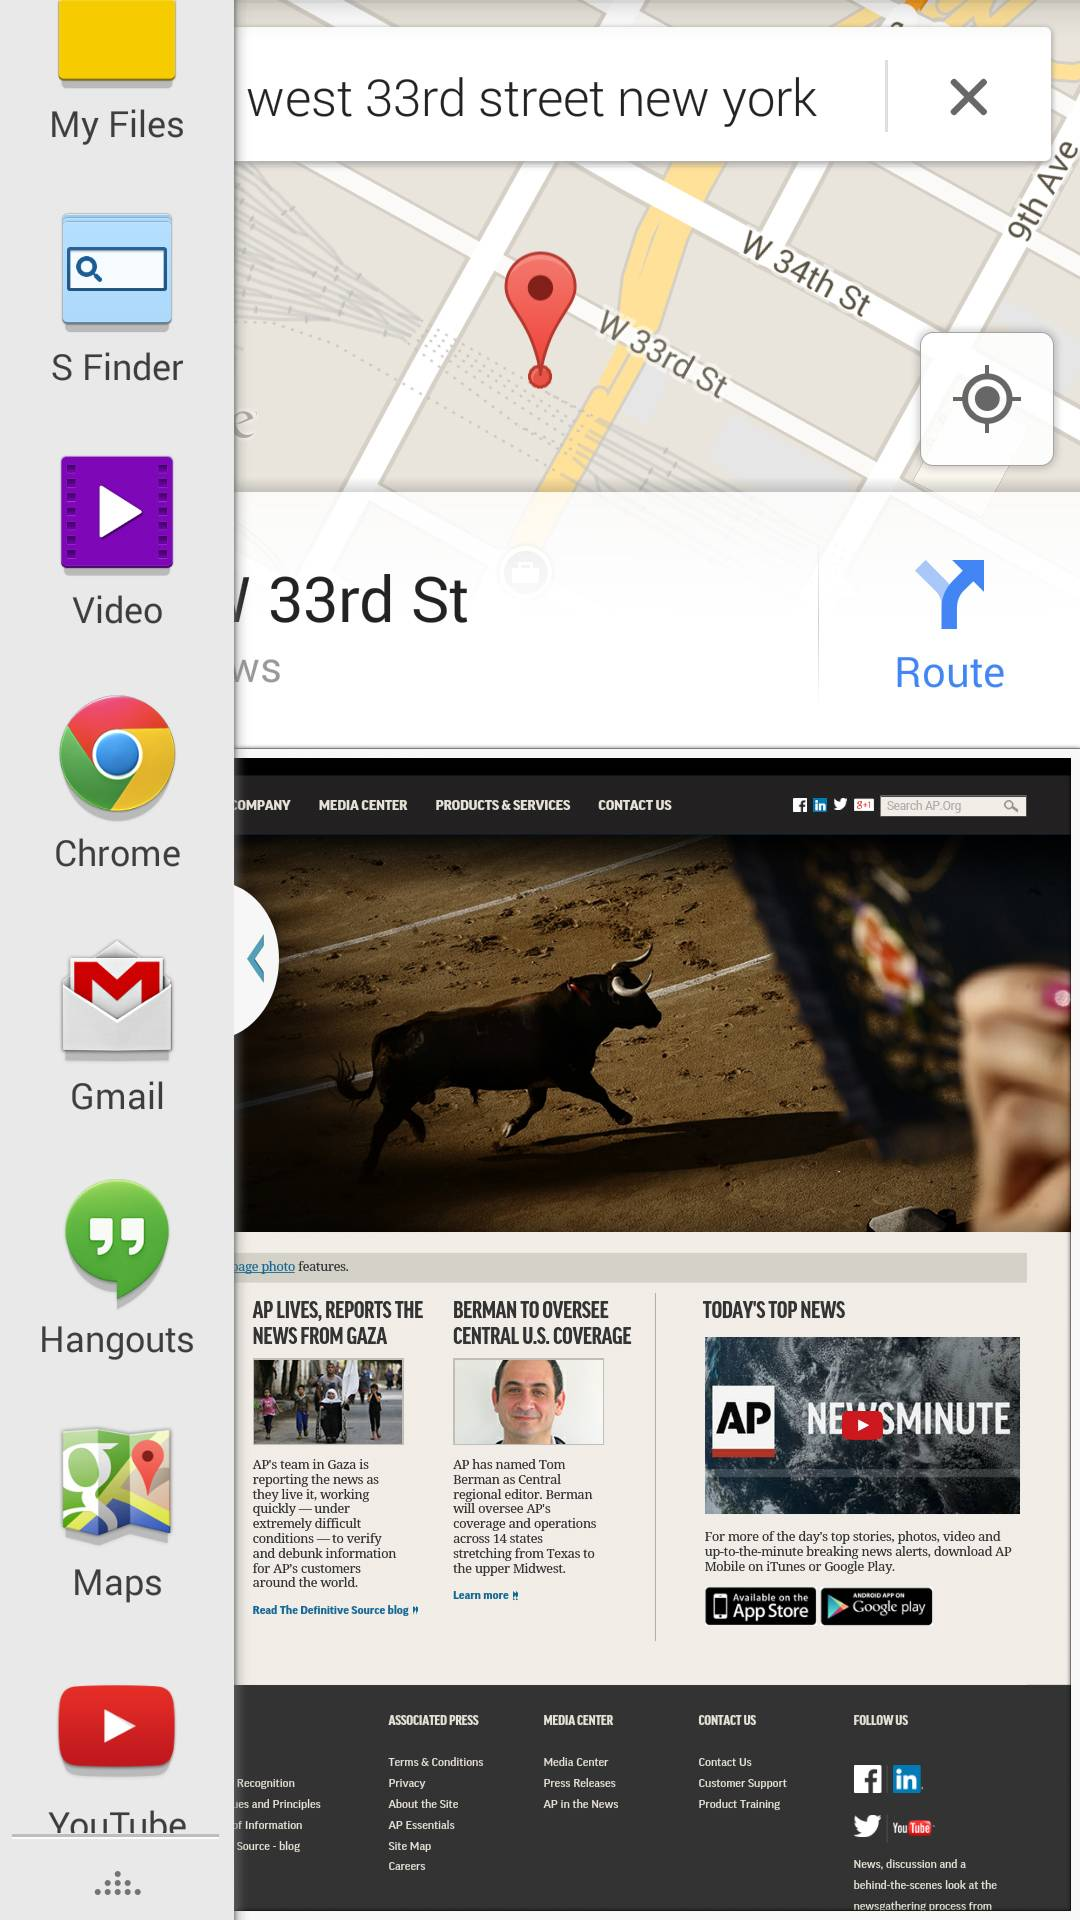 This screen shot taken from a Samsung Galaxy S5 demonstrates the device's Multi-Window function, which lets you run multiple apps side by side.